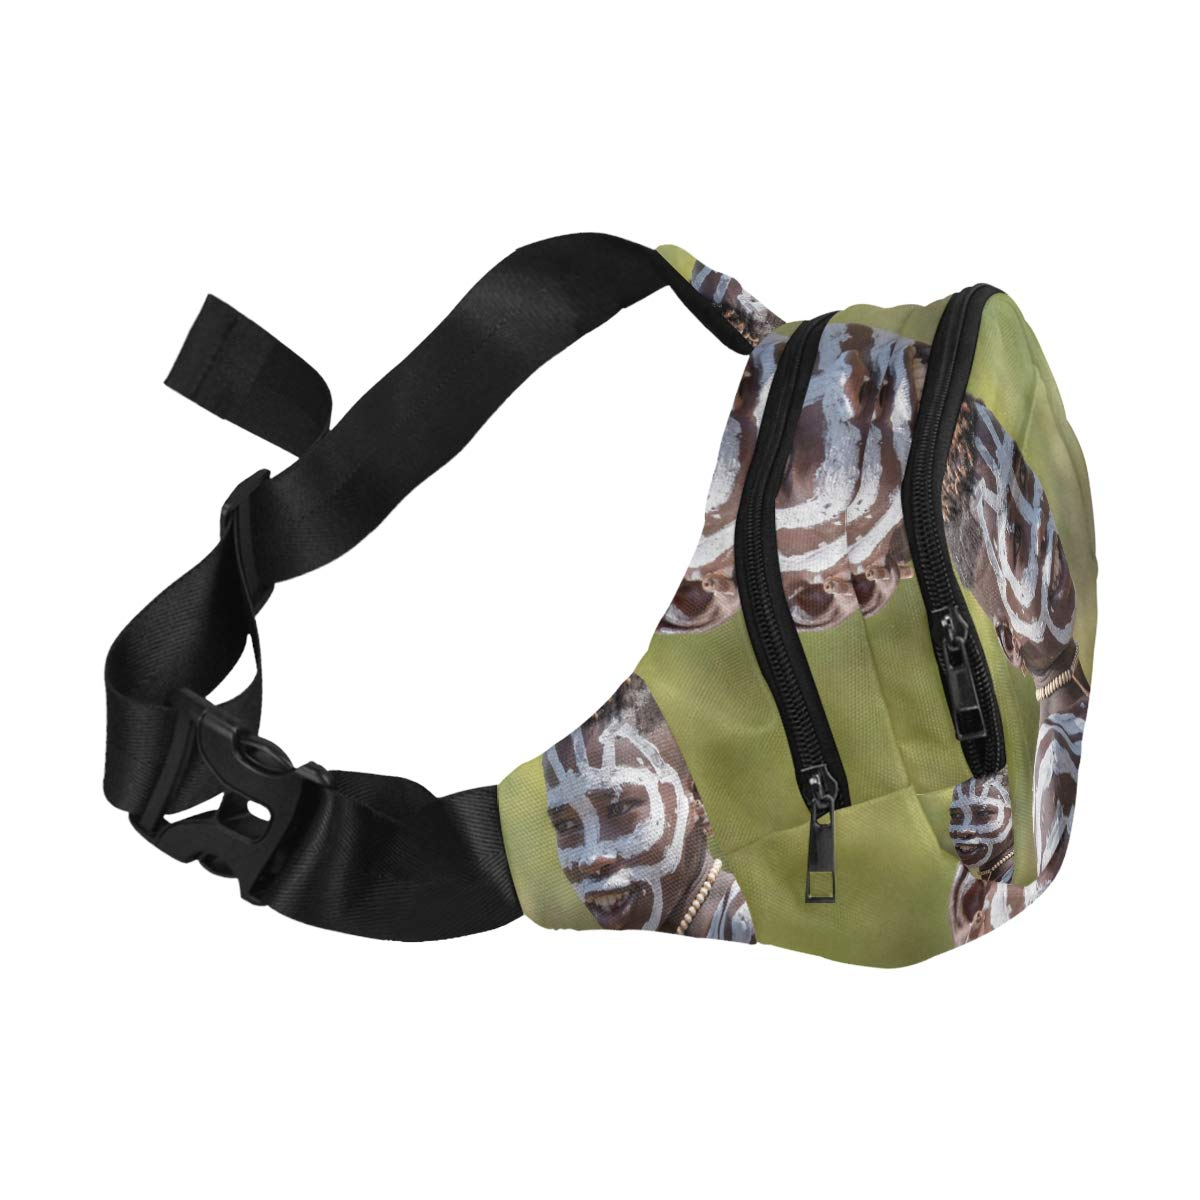 Men Wear Traditional Clothes With Paints On Their Faces Fenny Packs Waist Bags Adjustable Belt Waterproof Nylon Travel Running Sport Vacation Party For Men Women Boys Girls Kids